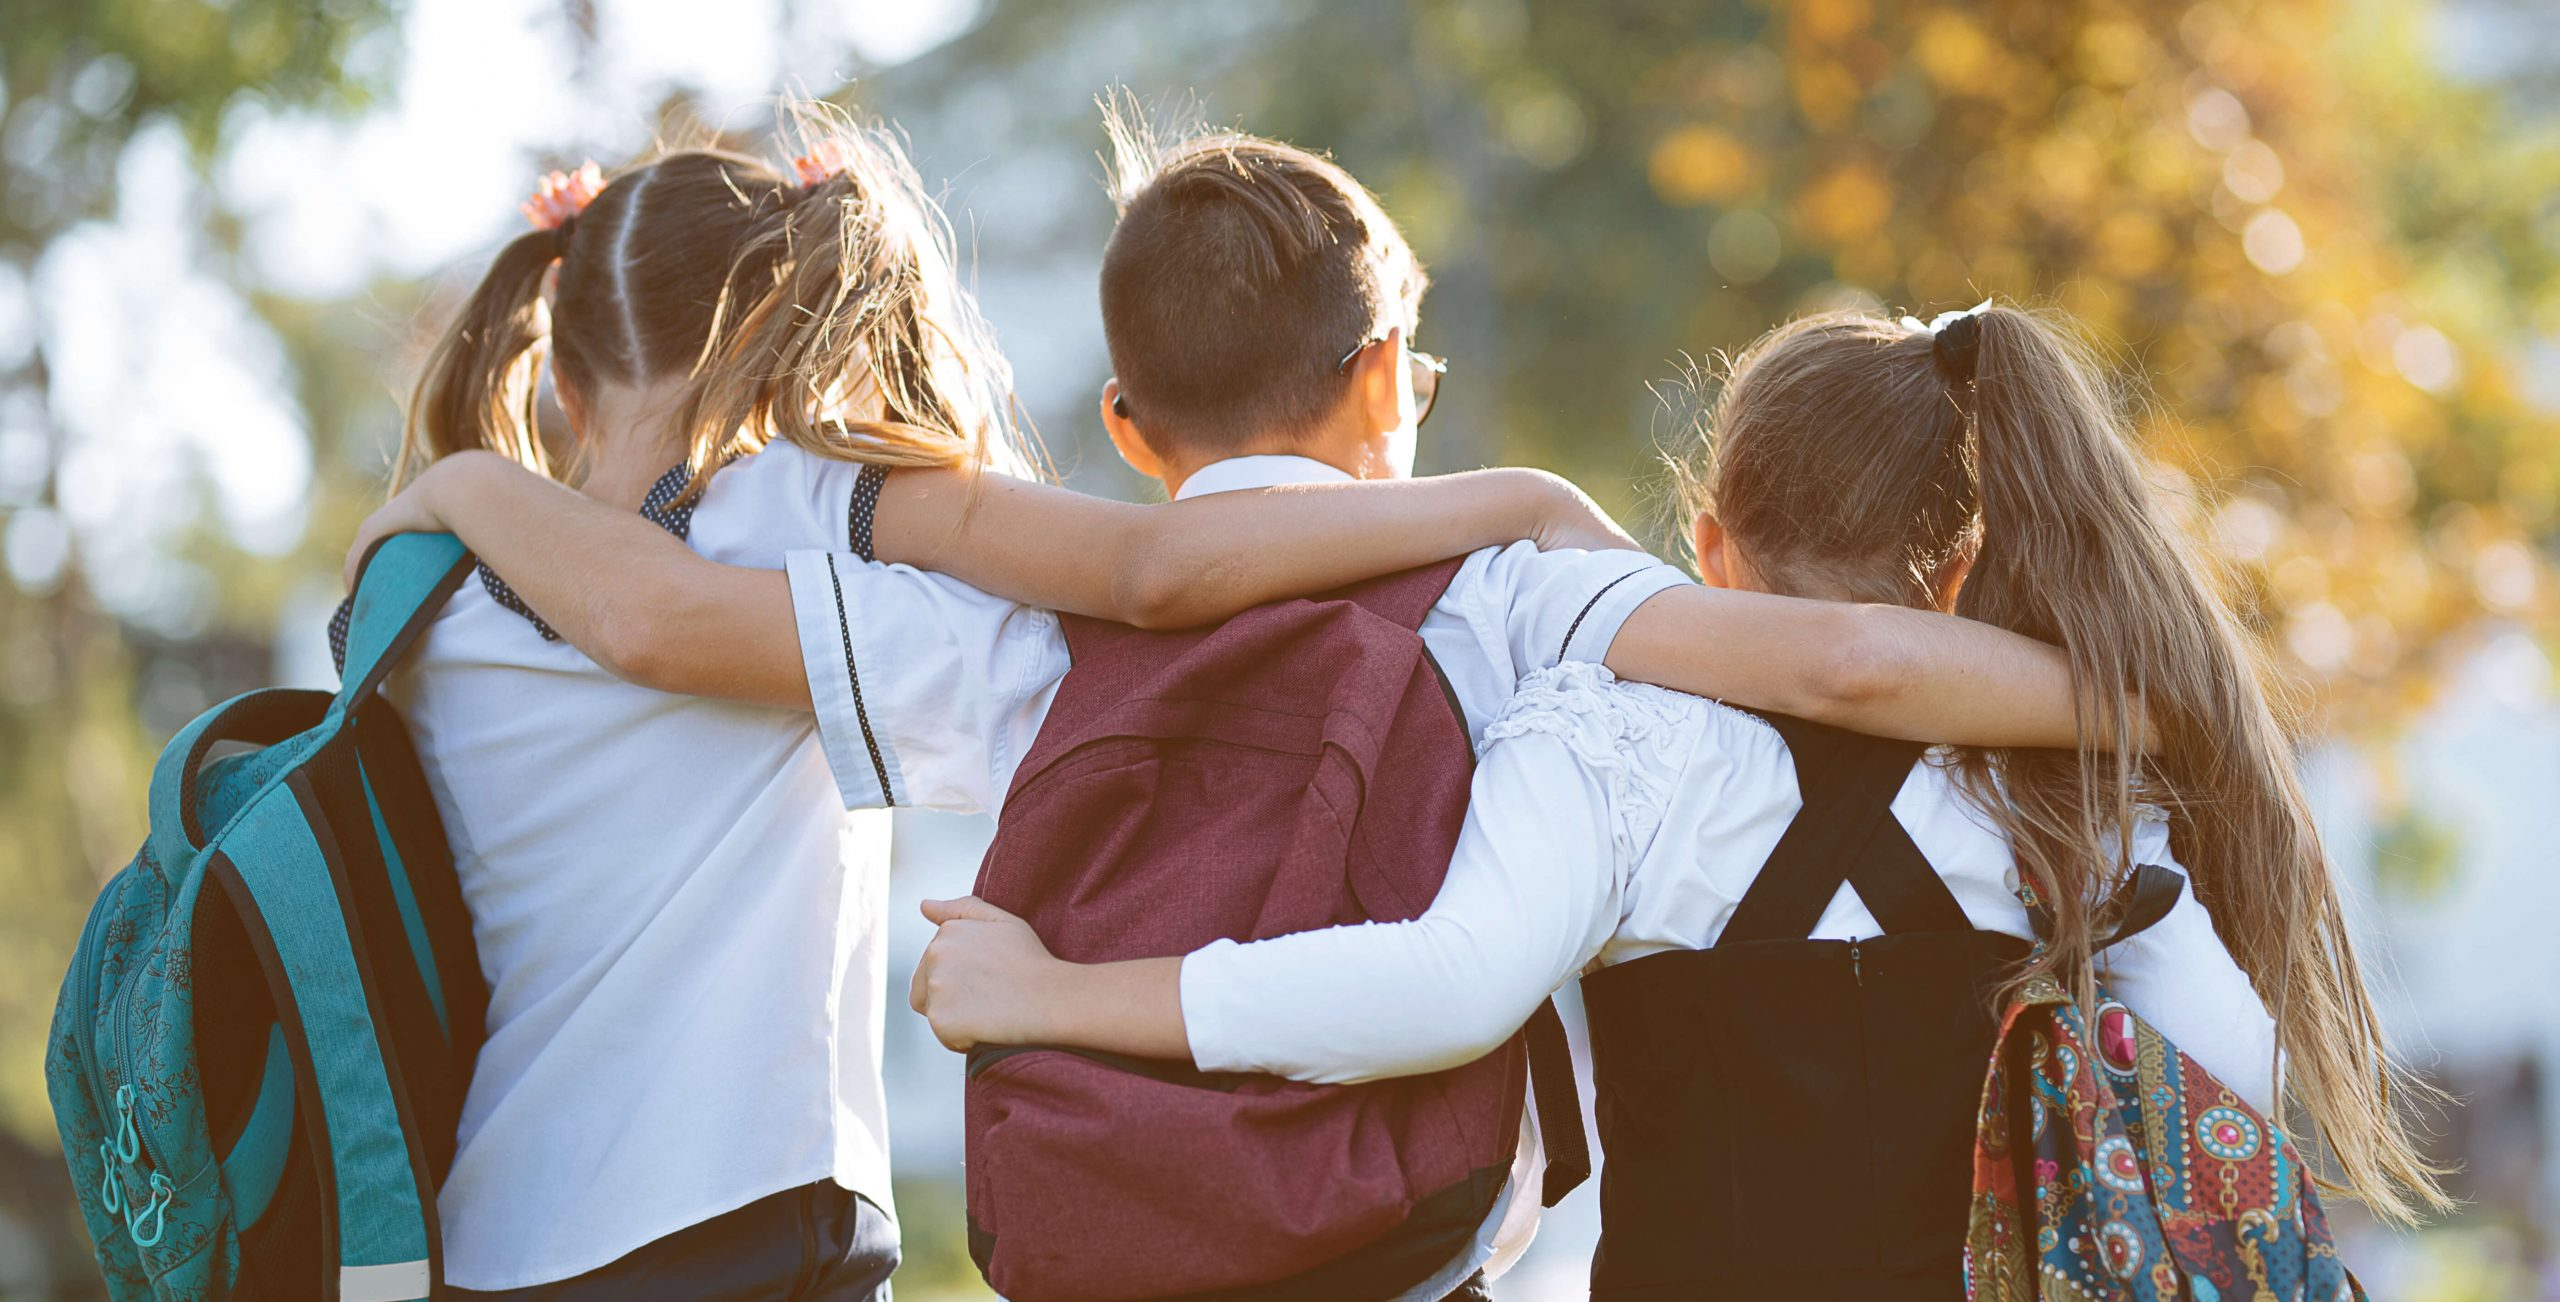 aftercare, after school childcare, active children, childcare for schools